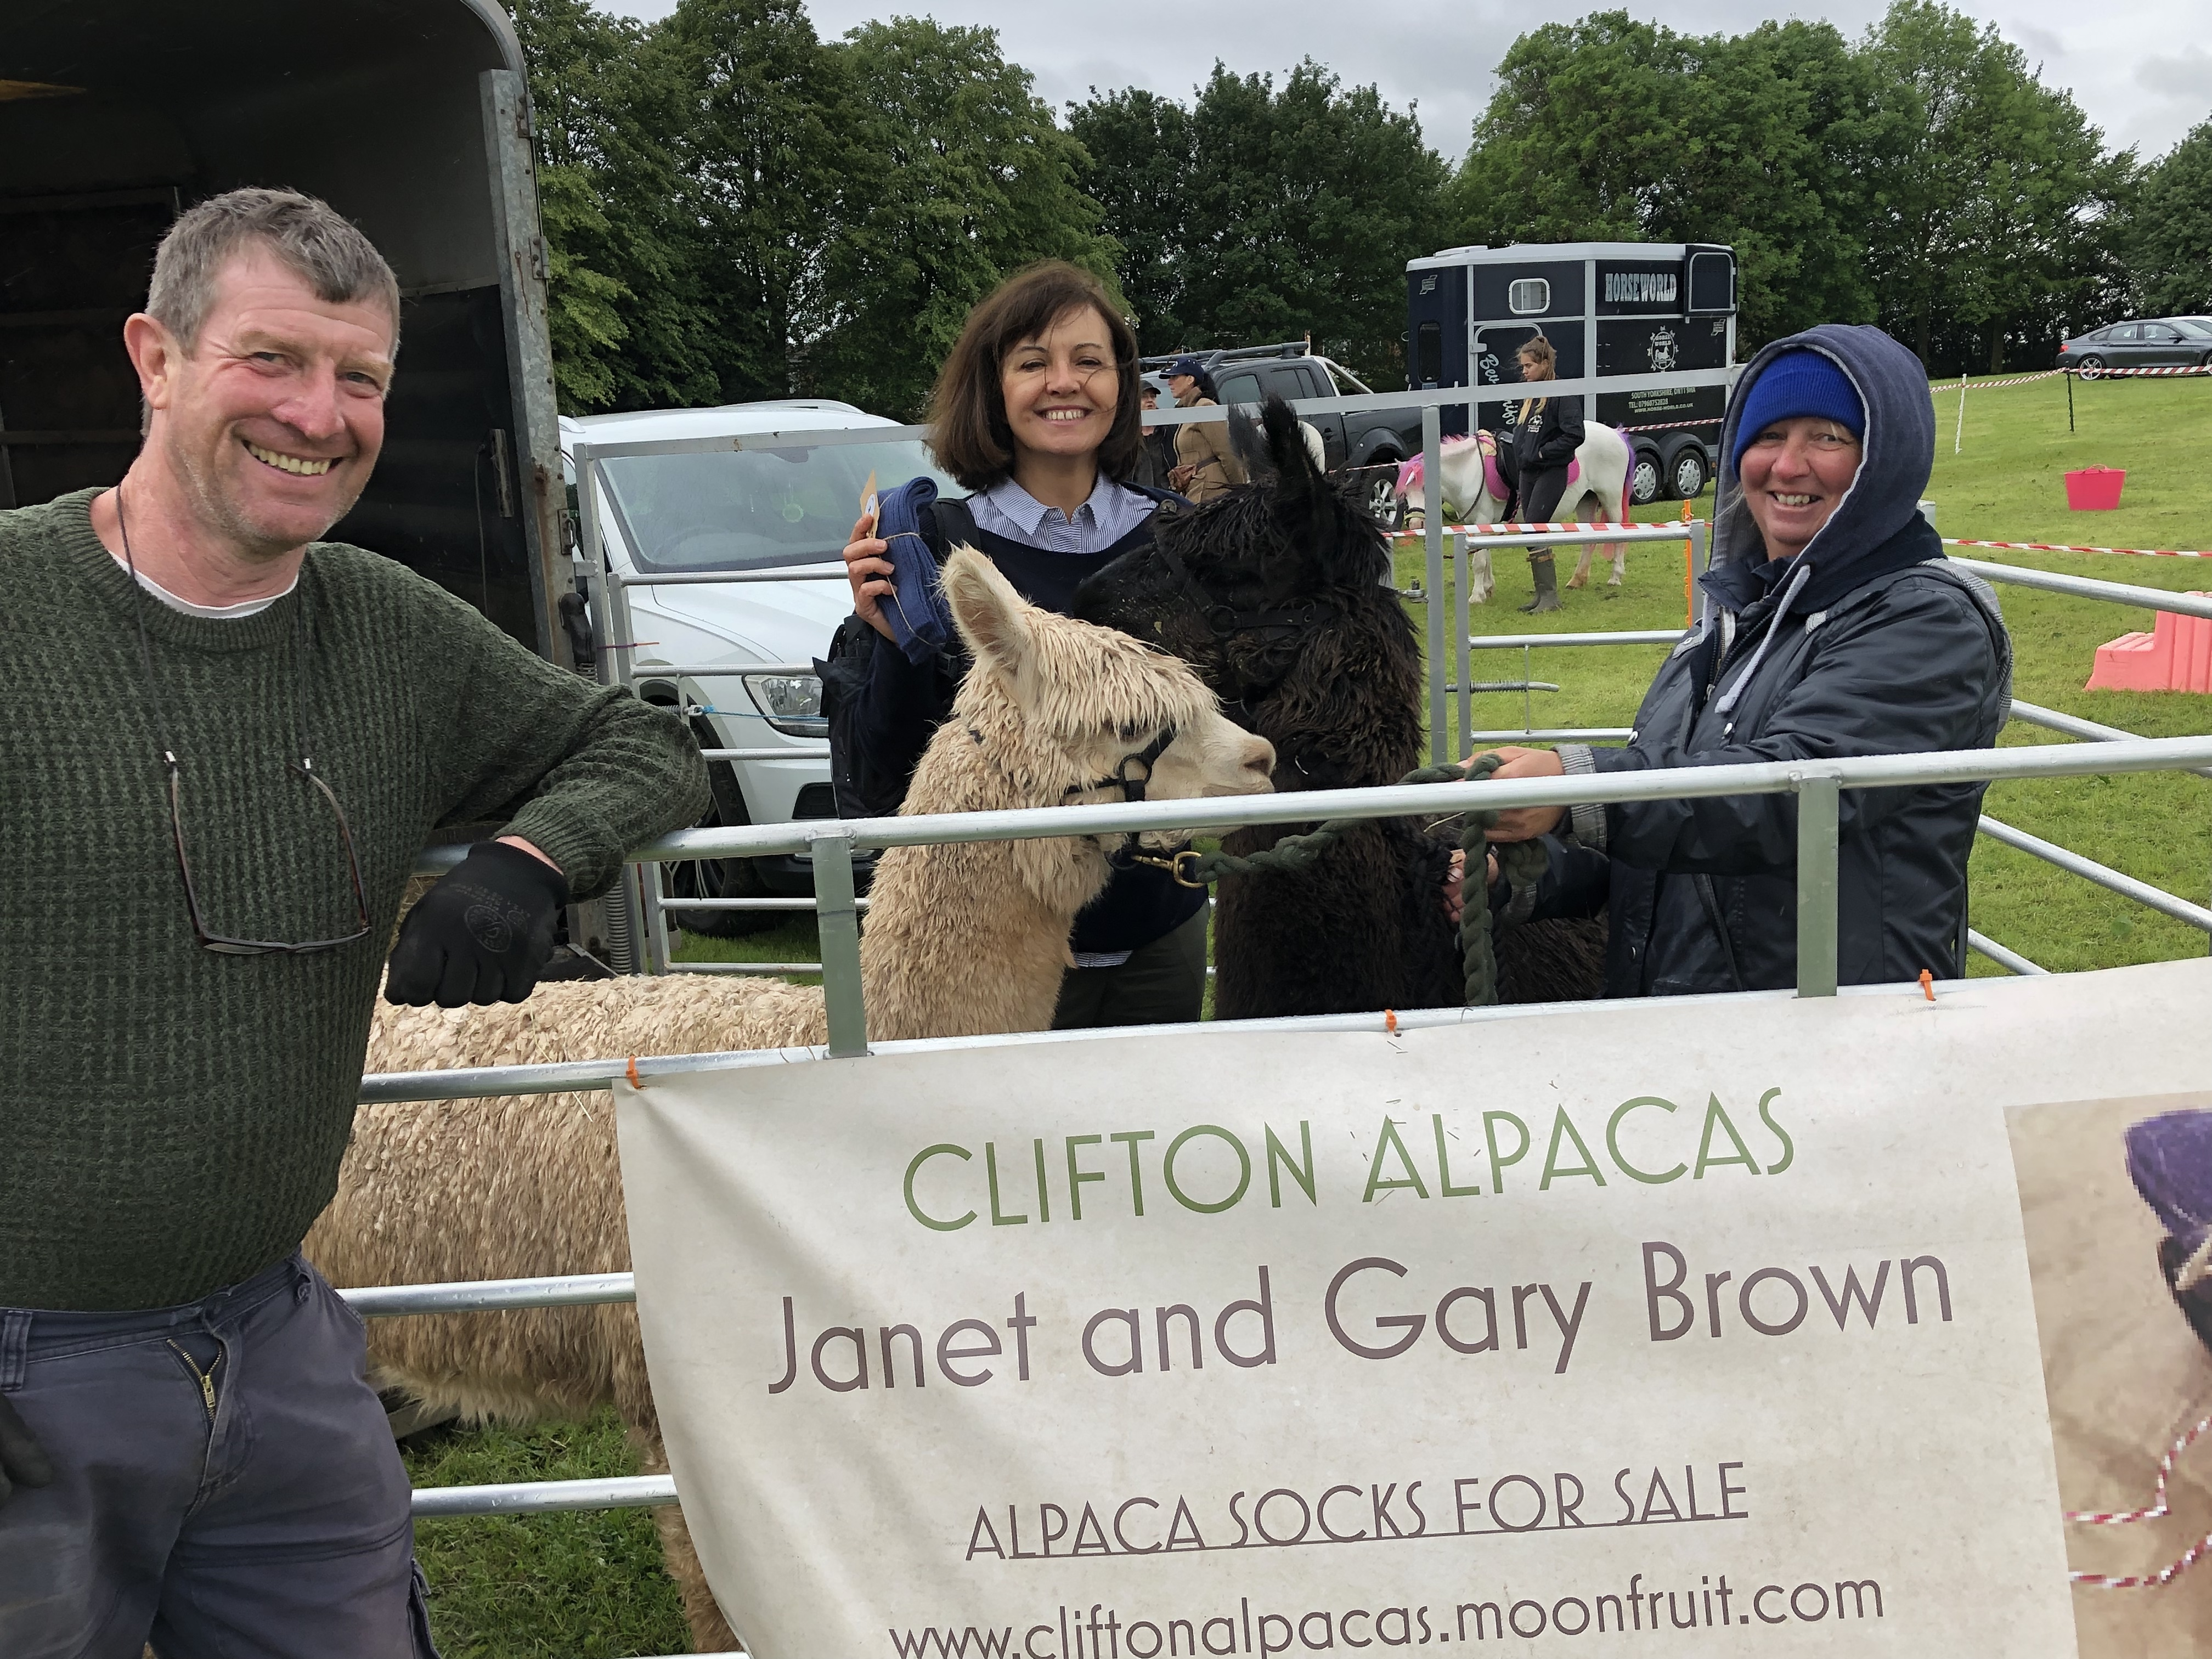 Caroline_Gary_and_Janet_-_clifton_alpacas.jpg